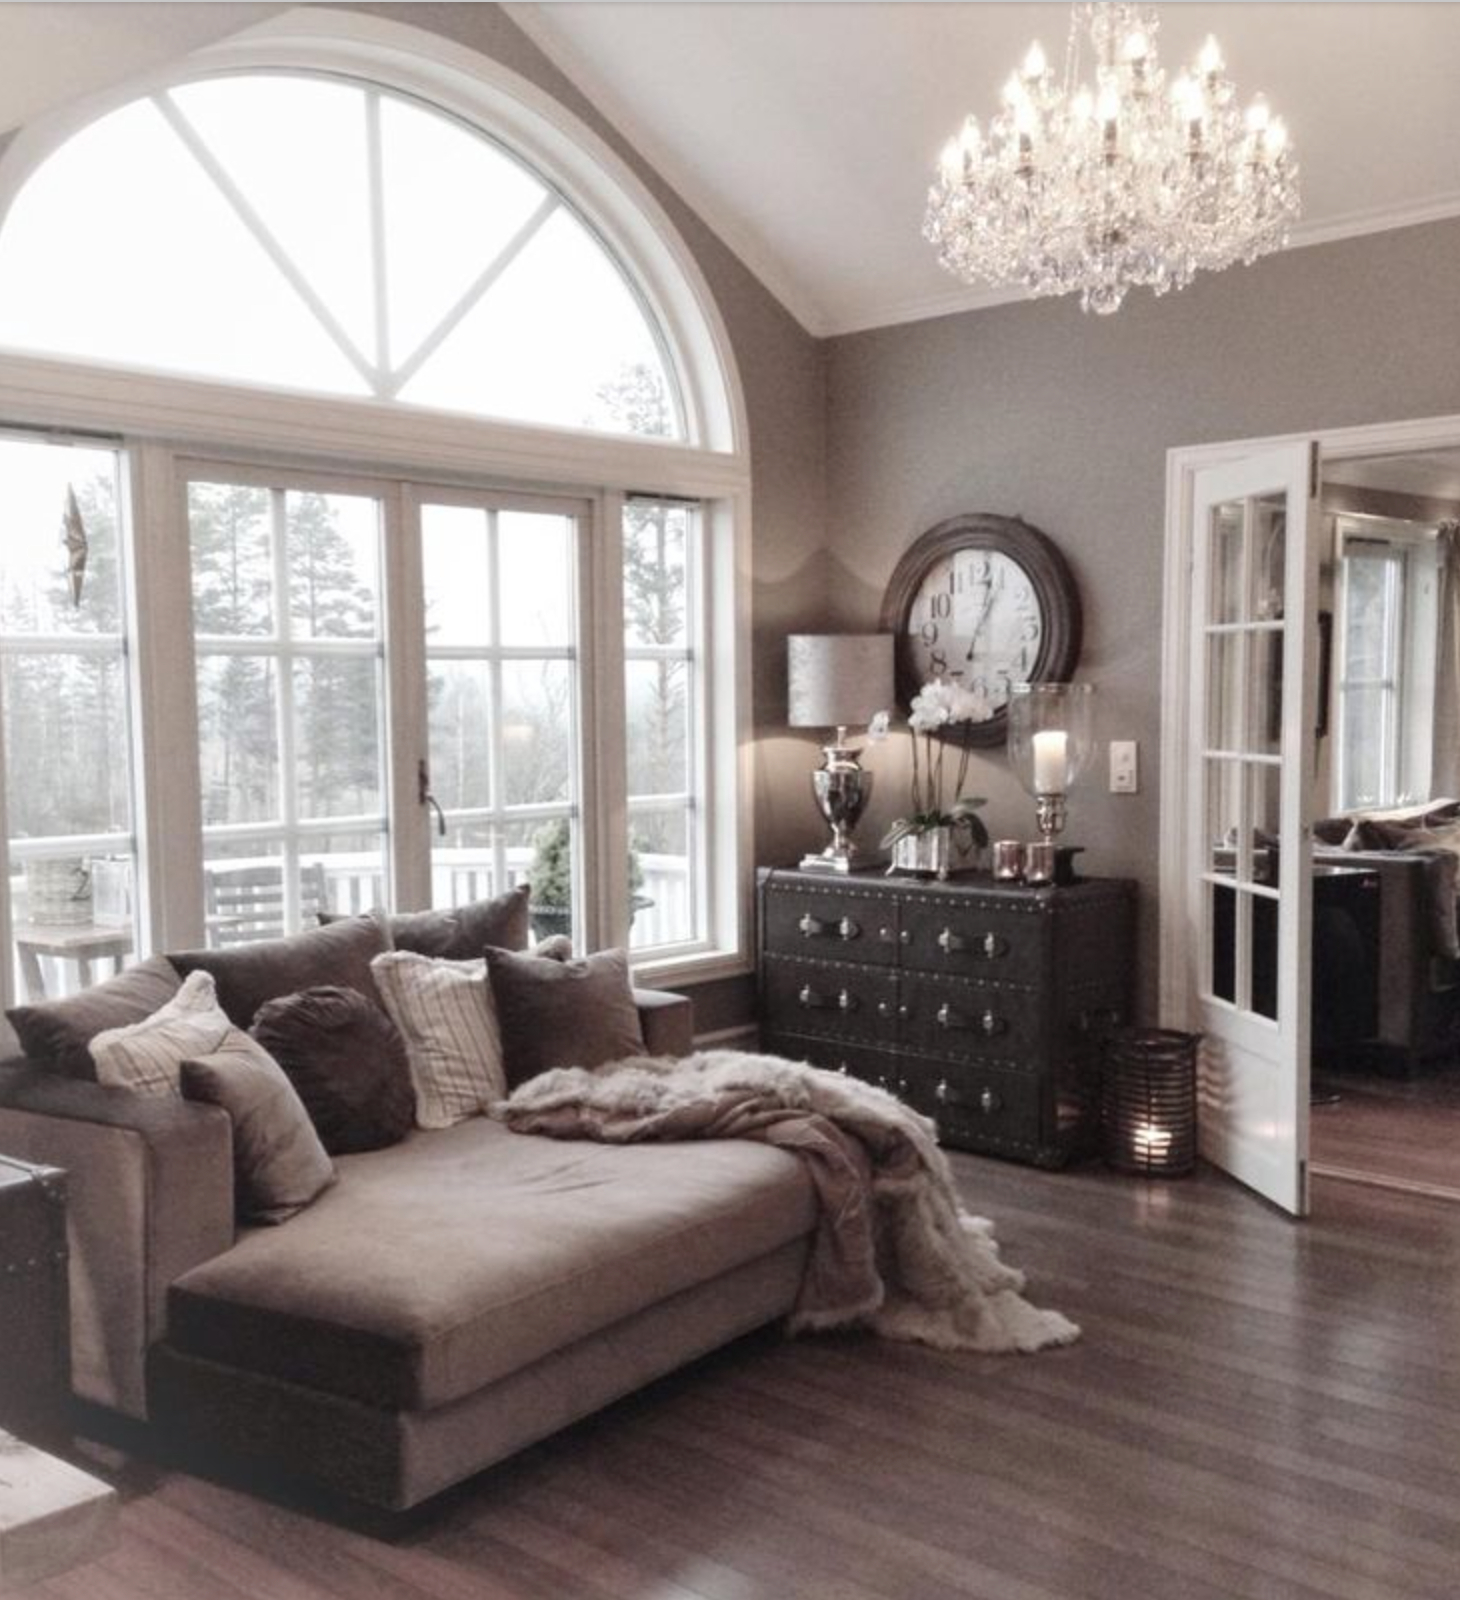 Picture of: Two Person Chaise Ideas On Foter